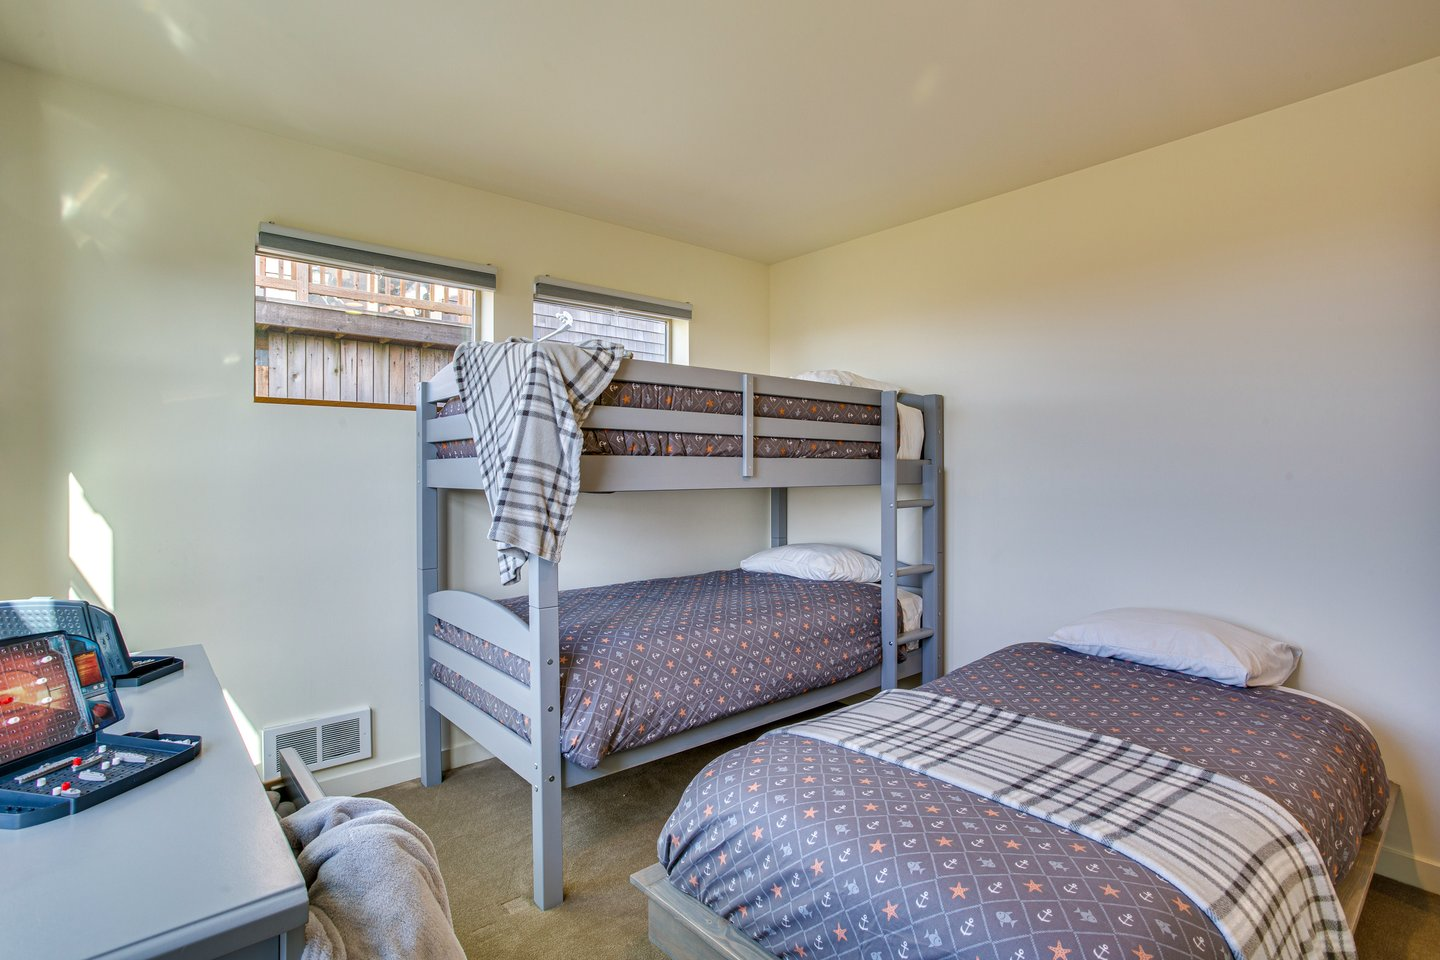 The bunkbed room is perfect for the kids!